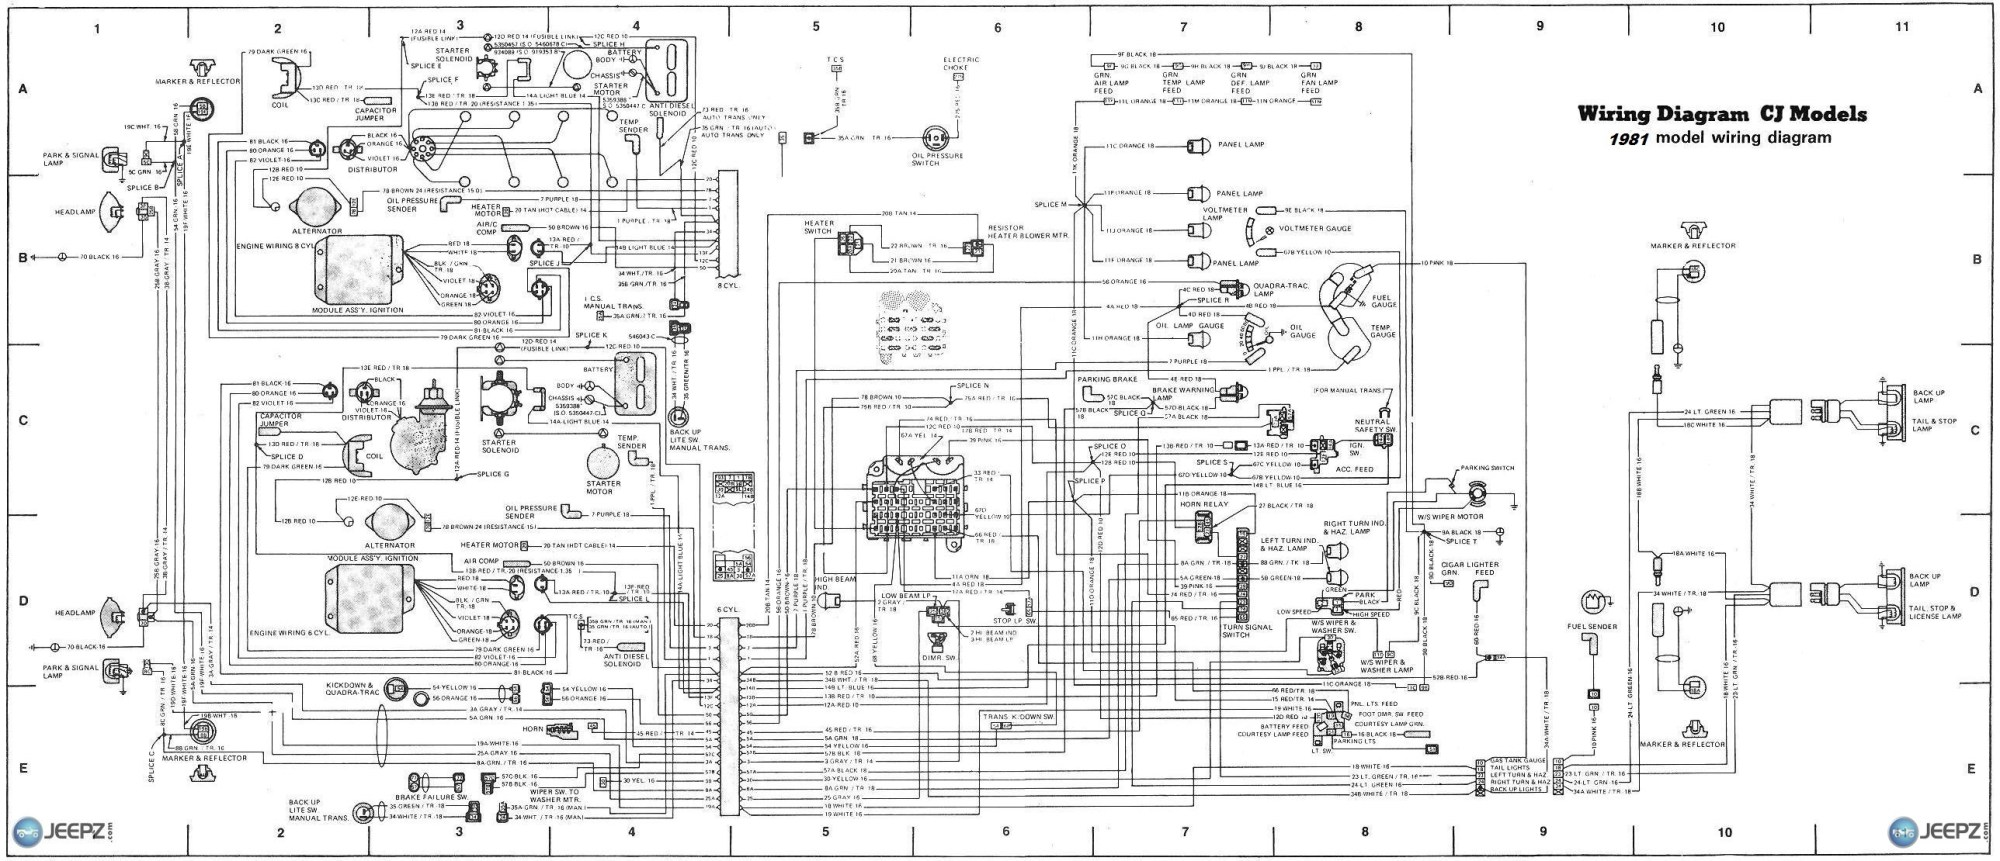 hight resolution of 1980 jeep cj7 wiring diagram wiring diagram explained jeep cj7 carburetor diagram jeep cj7 wiring diagram